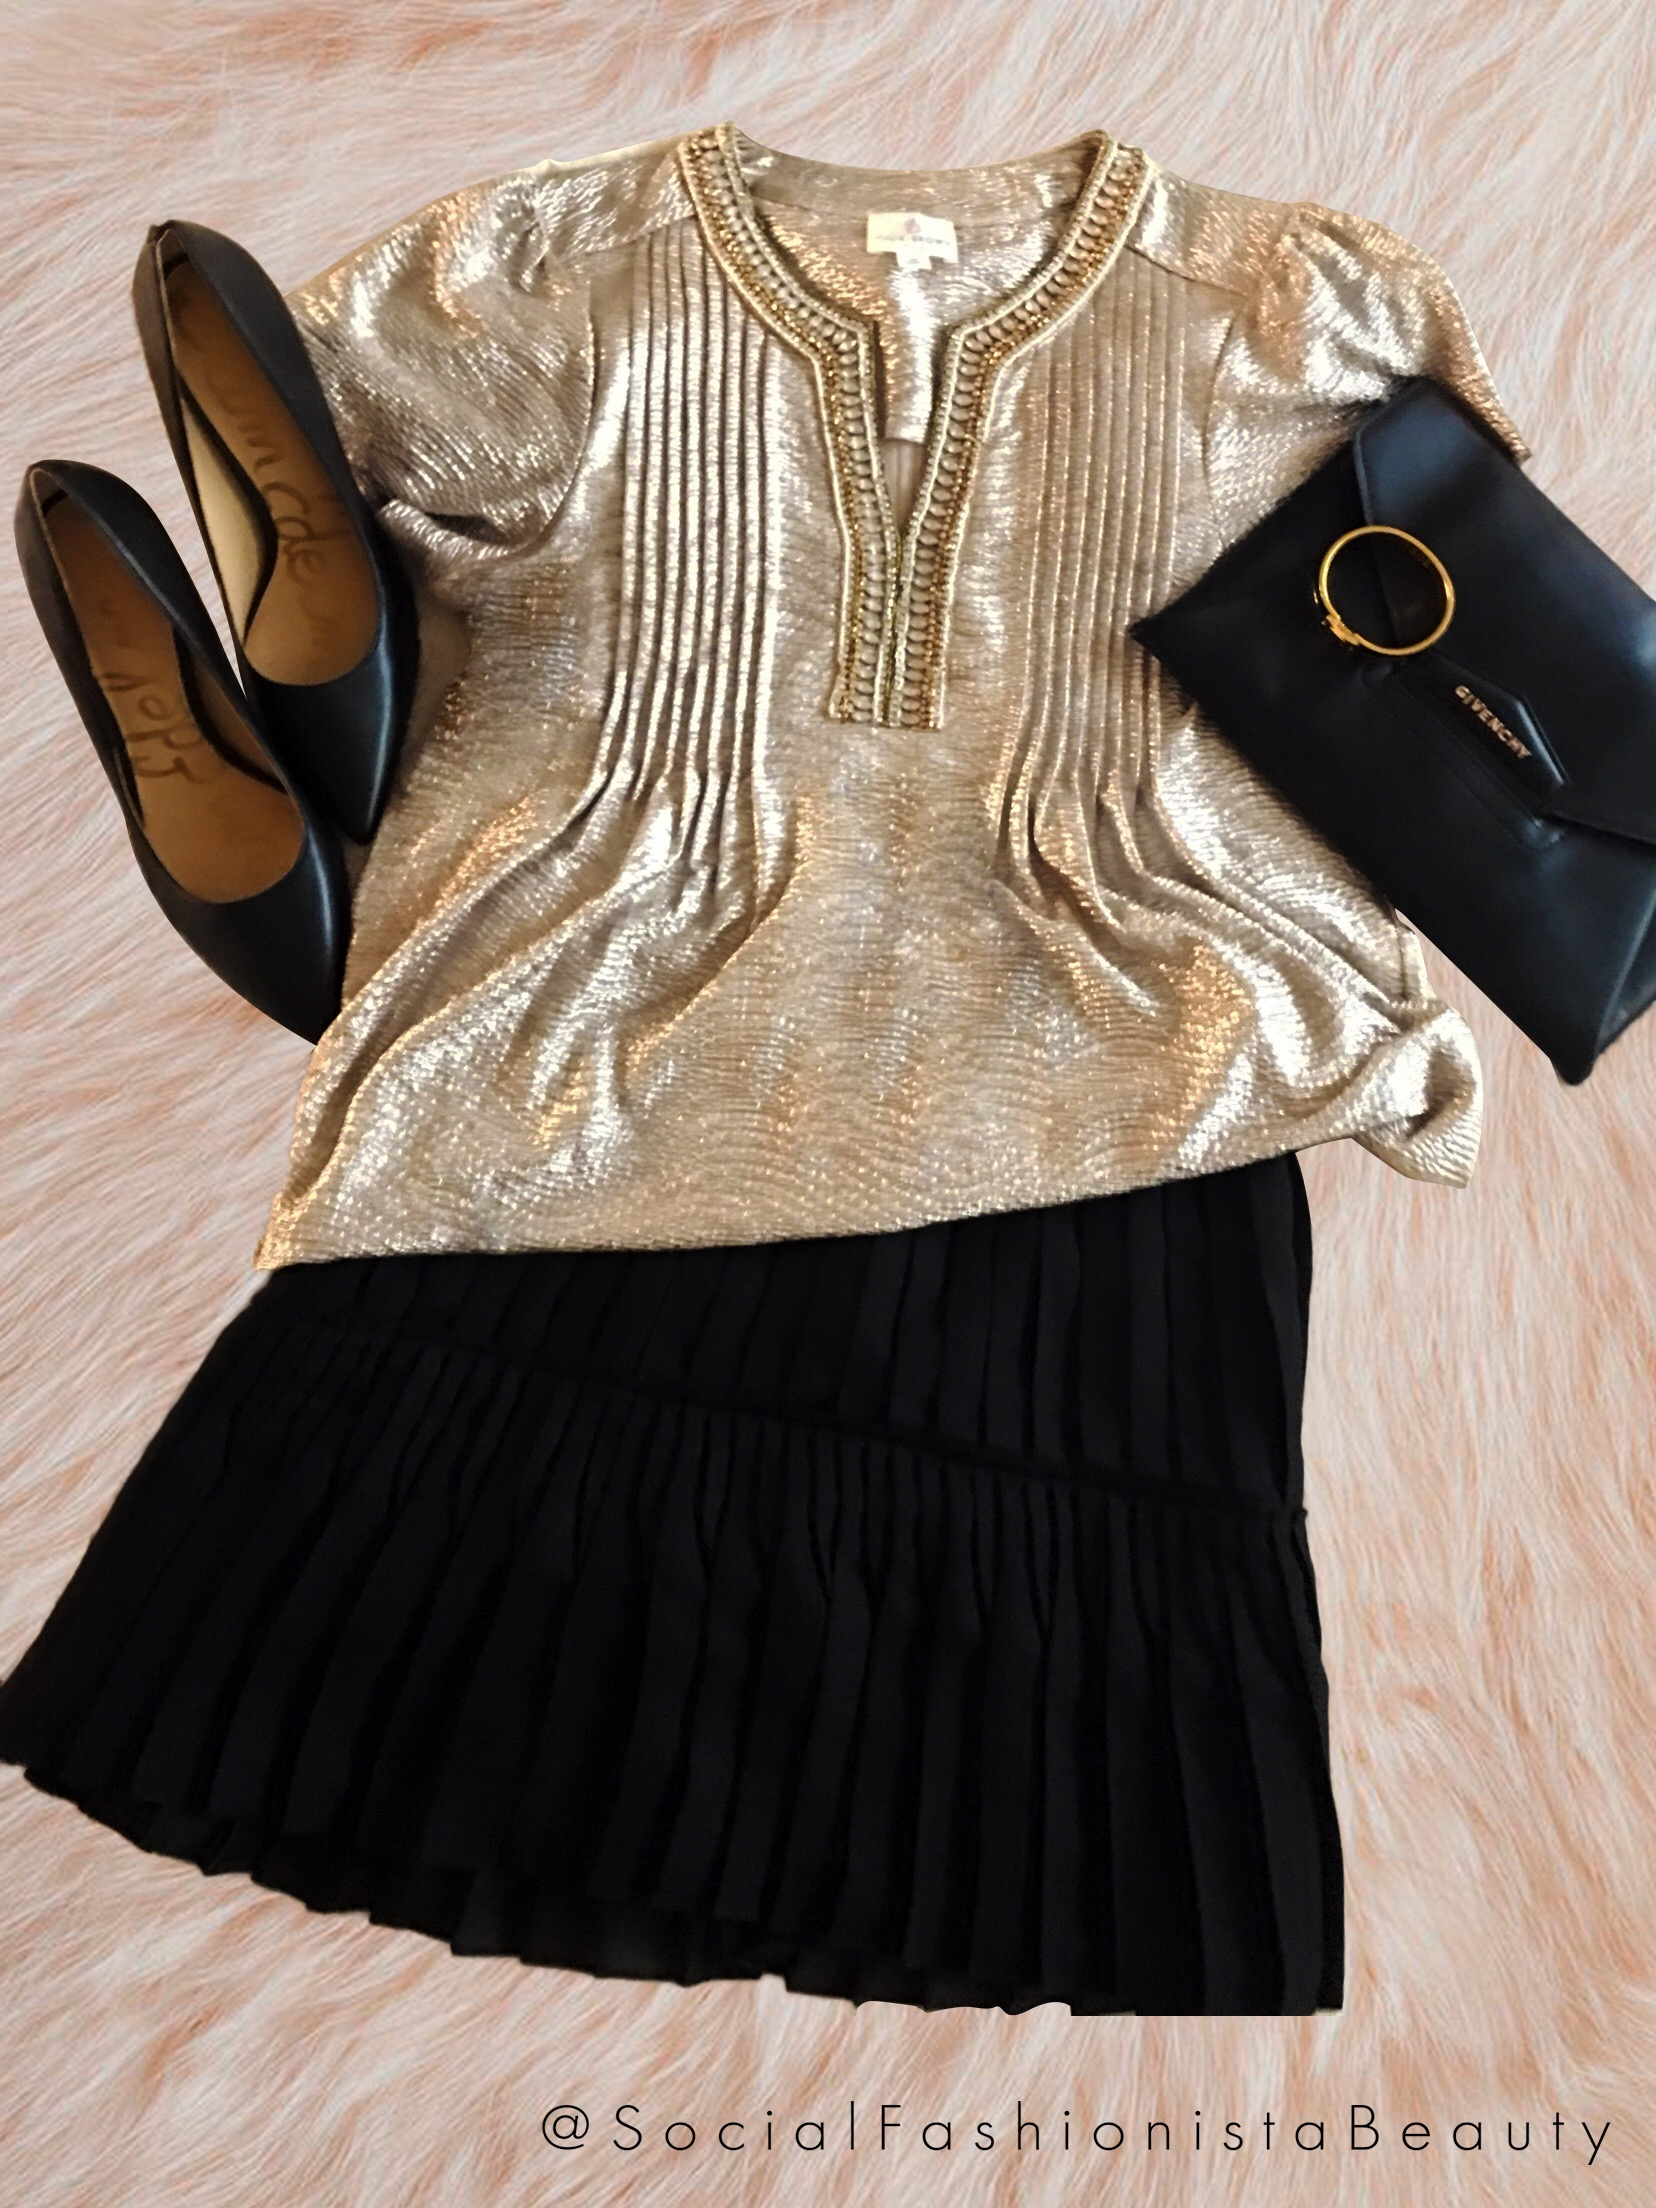 c02cd5d444a2 I wore this outfit to a Holiday Birthday party for one of my fellow blogger  friends. The perfect outfit for an amazing evening!!